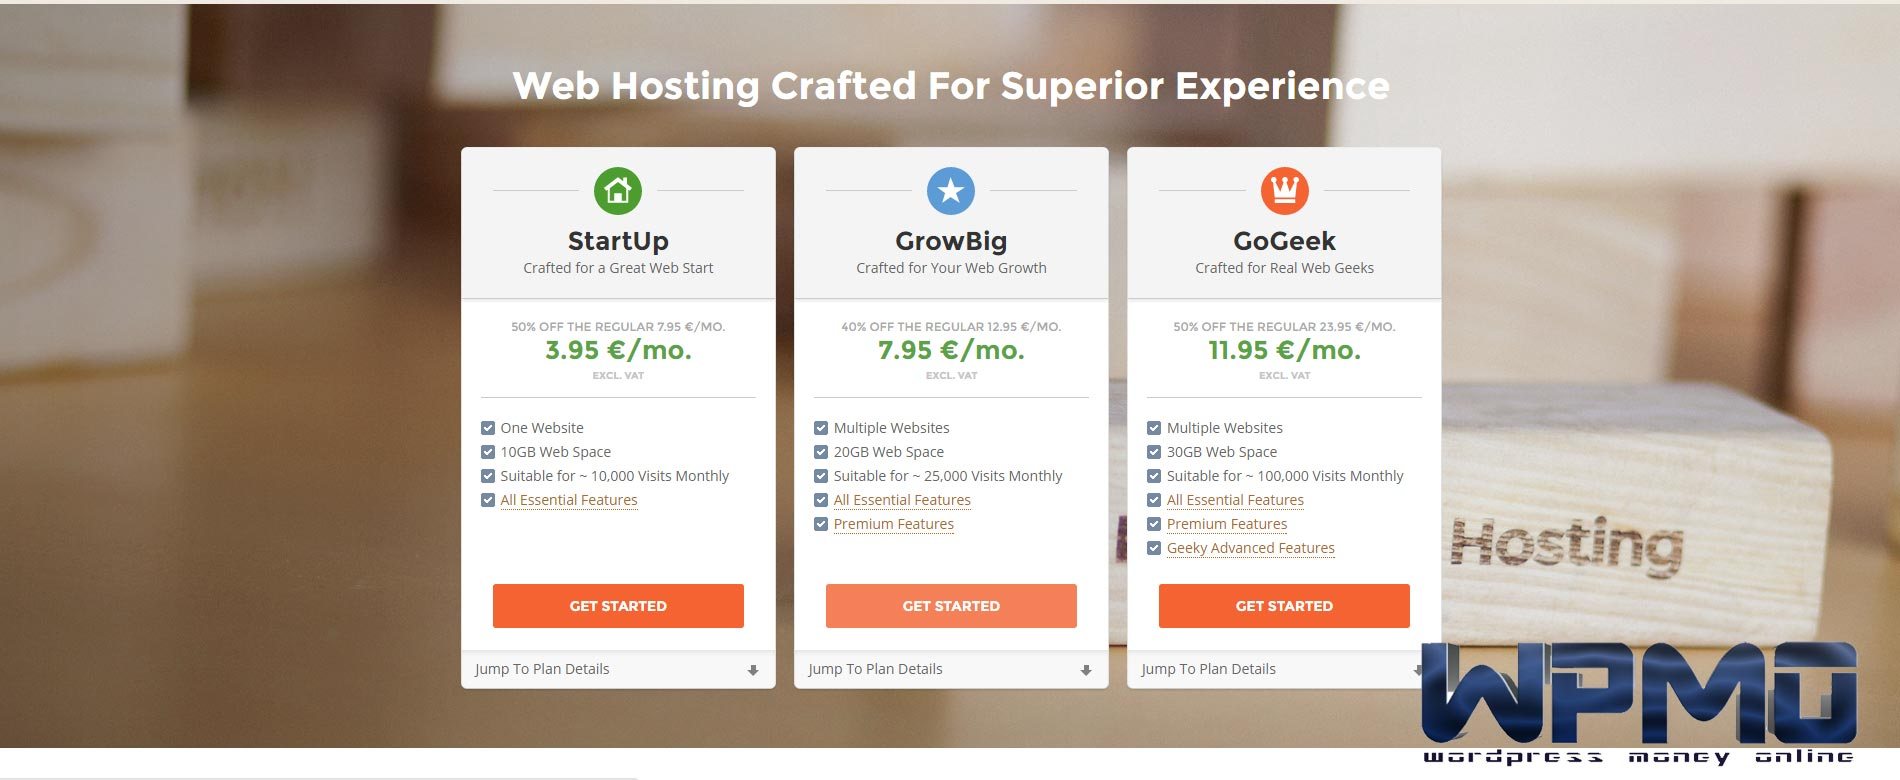 Select GrowBig plan and press get started - Create SiteGround Hosting Account